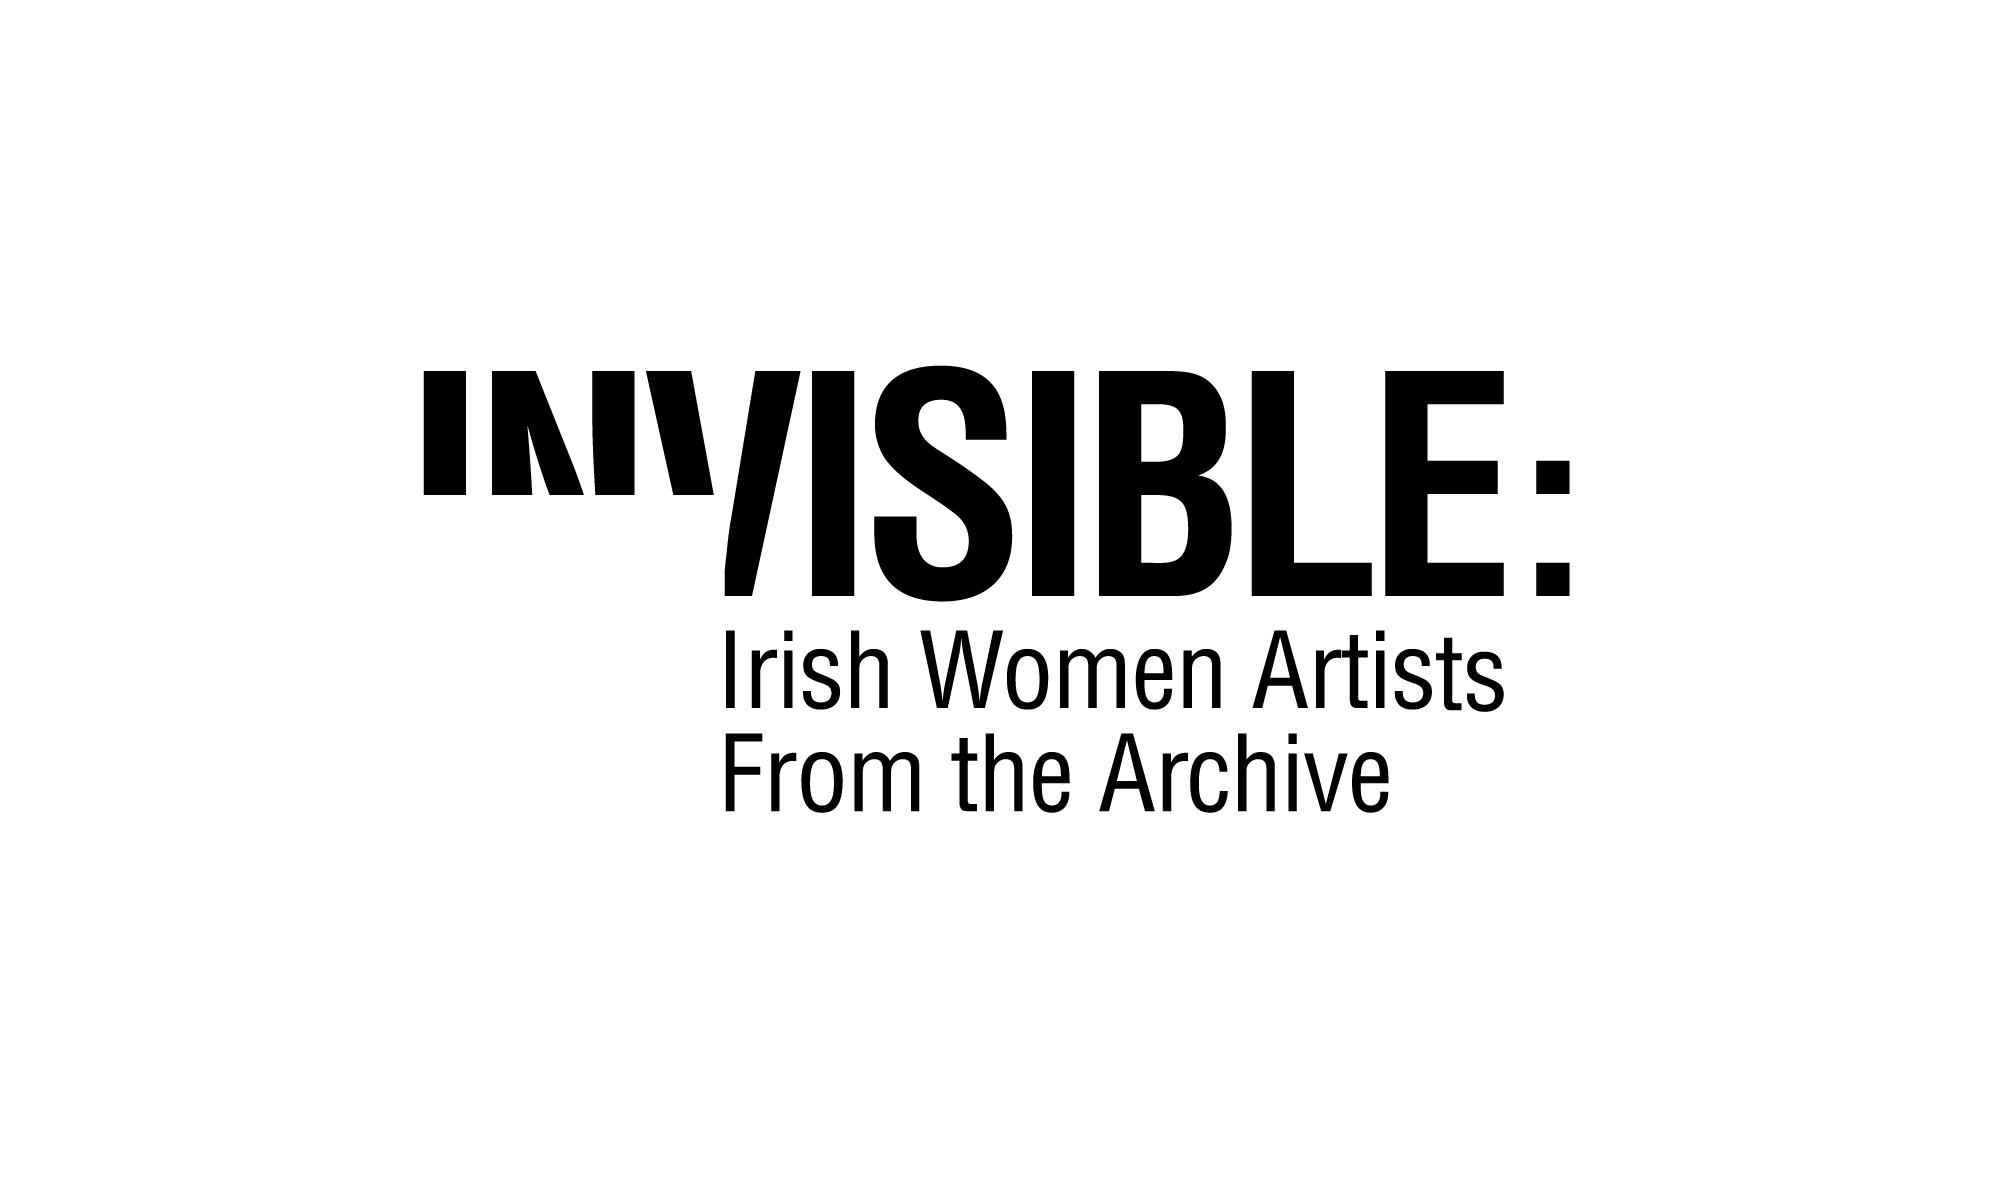 Cover image: Invisible: Irish Women Artists From the Archive